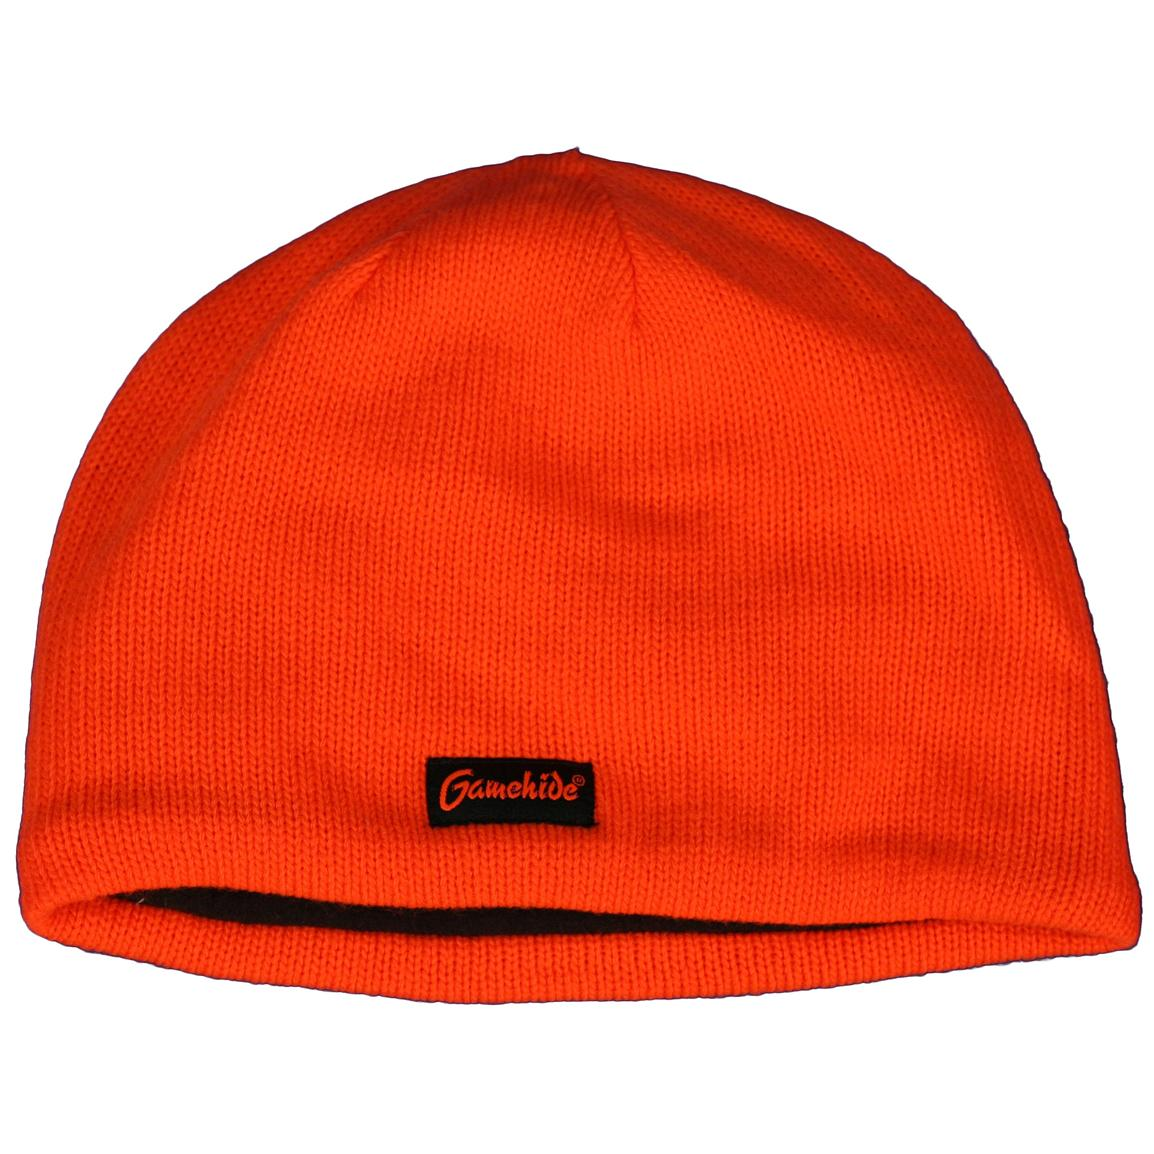 Gamehide® Skull Cap, Blaze Orange